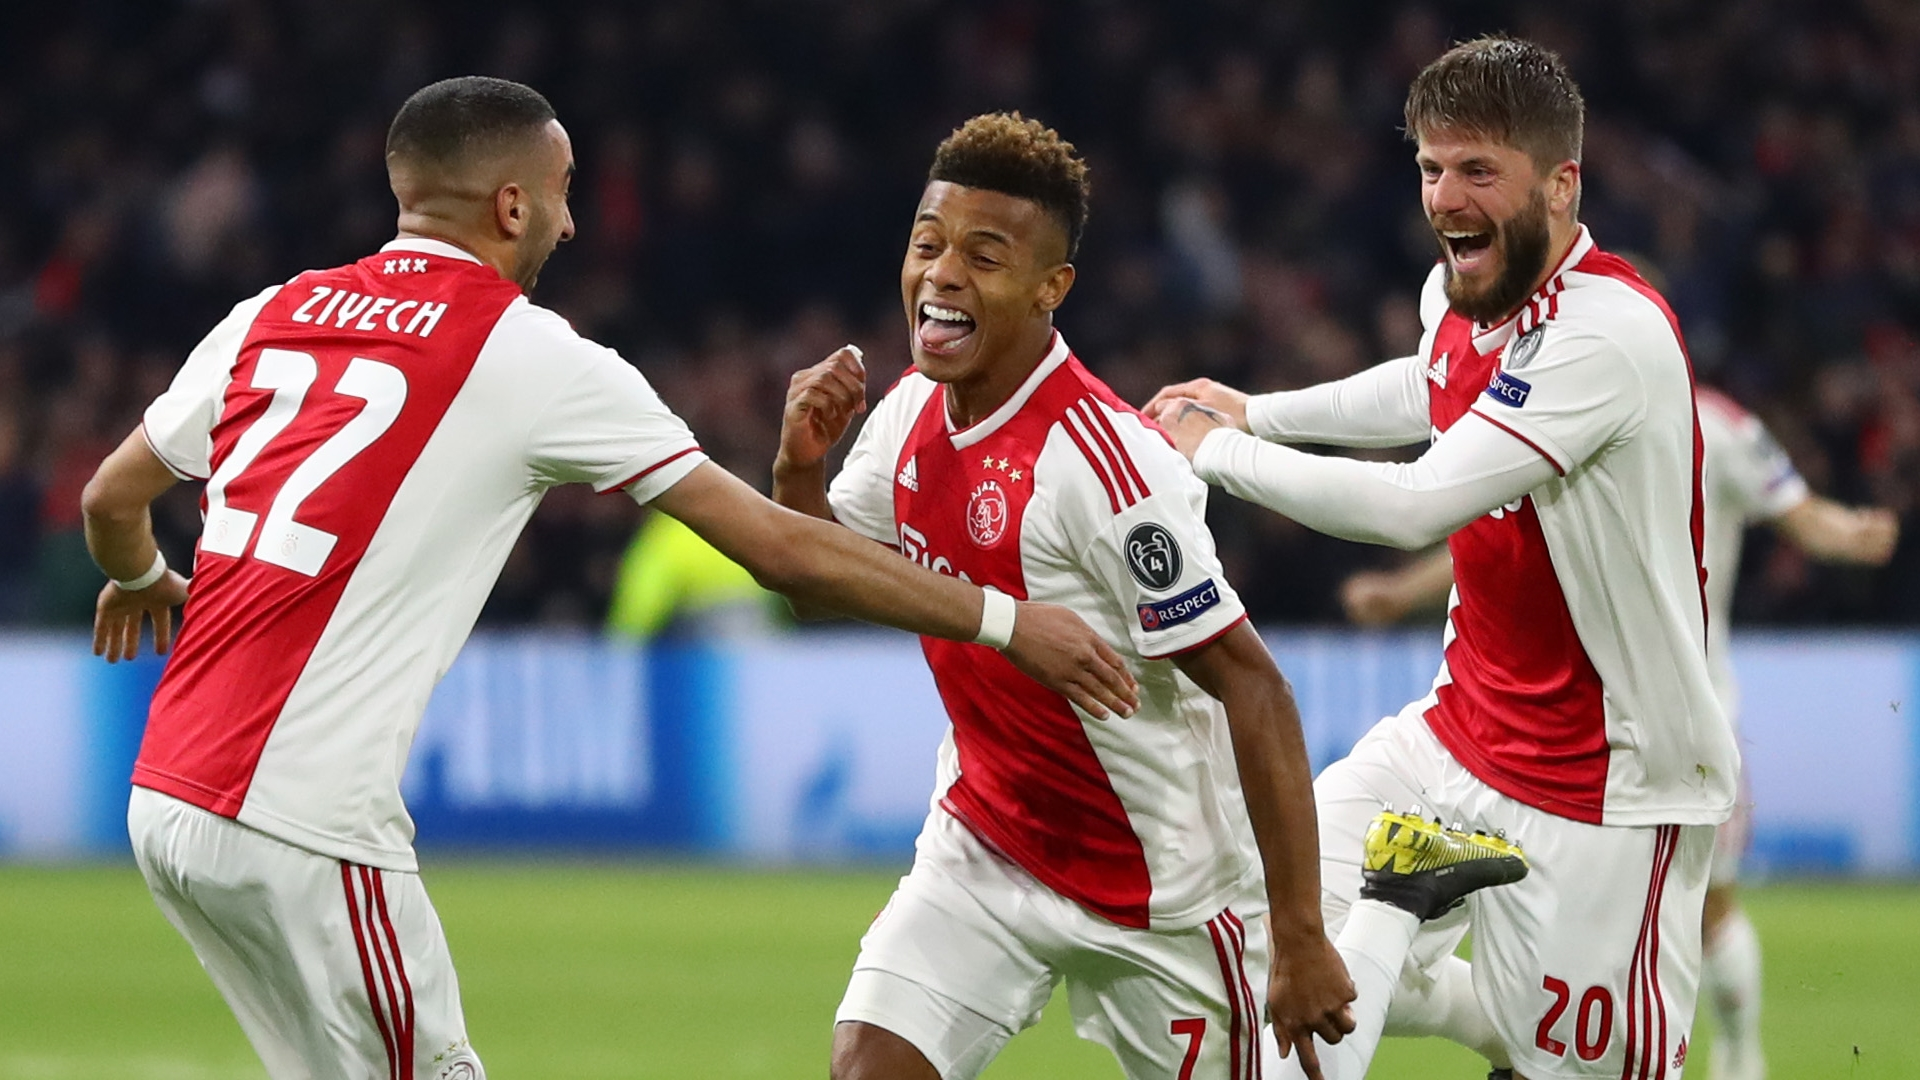 David Neres: 2018-19 UEFA Champions League Squad of the Season - Midfielder